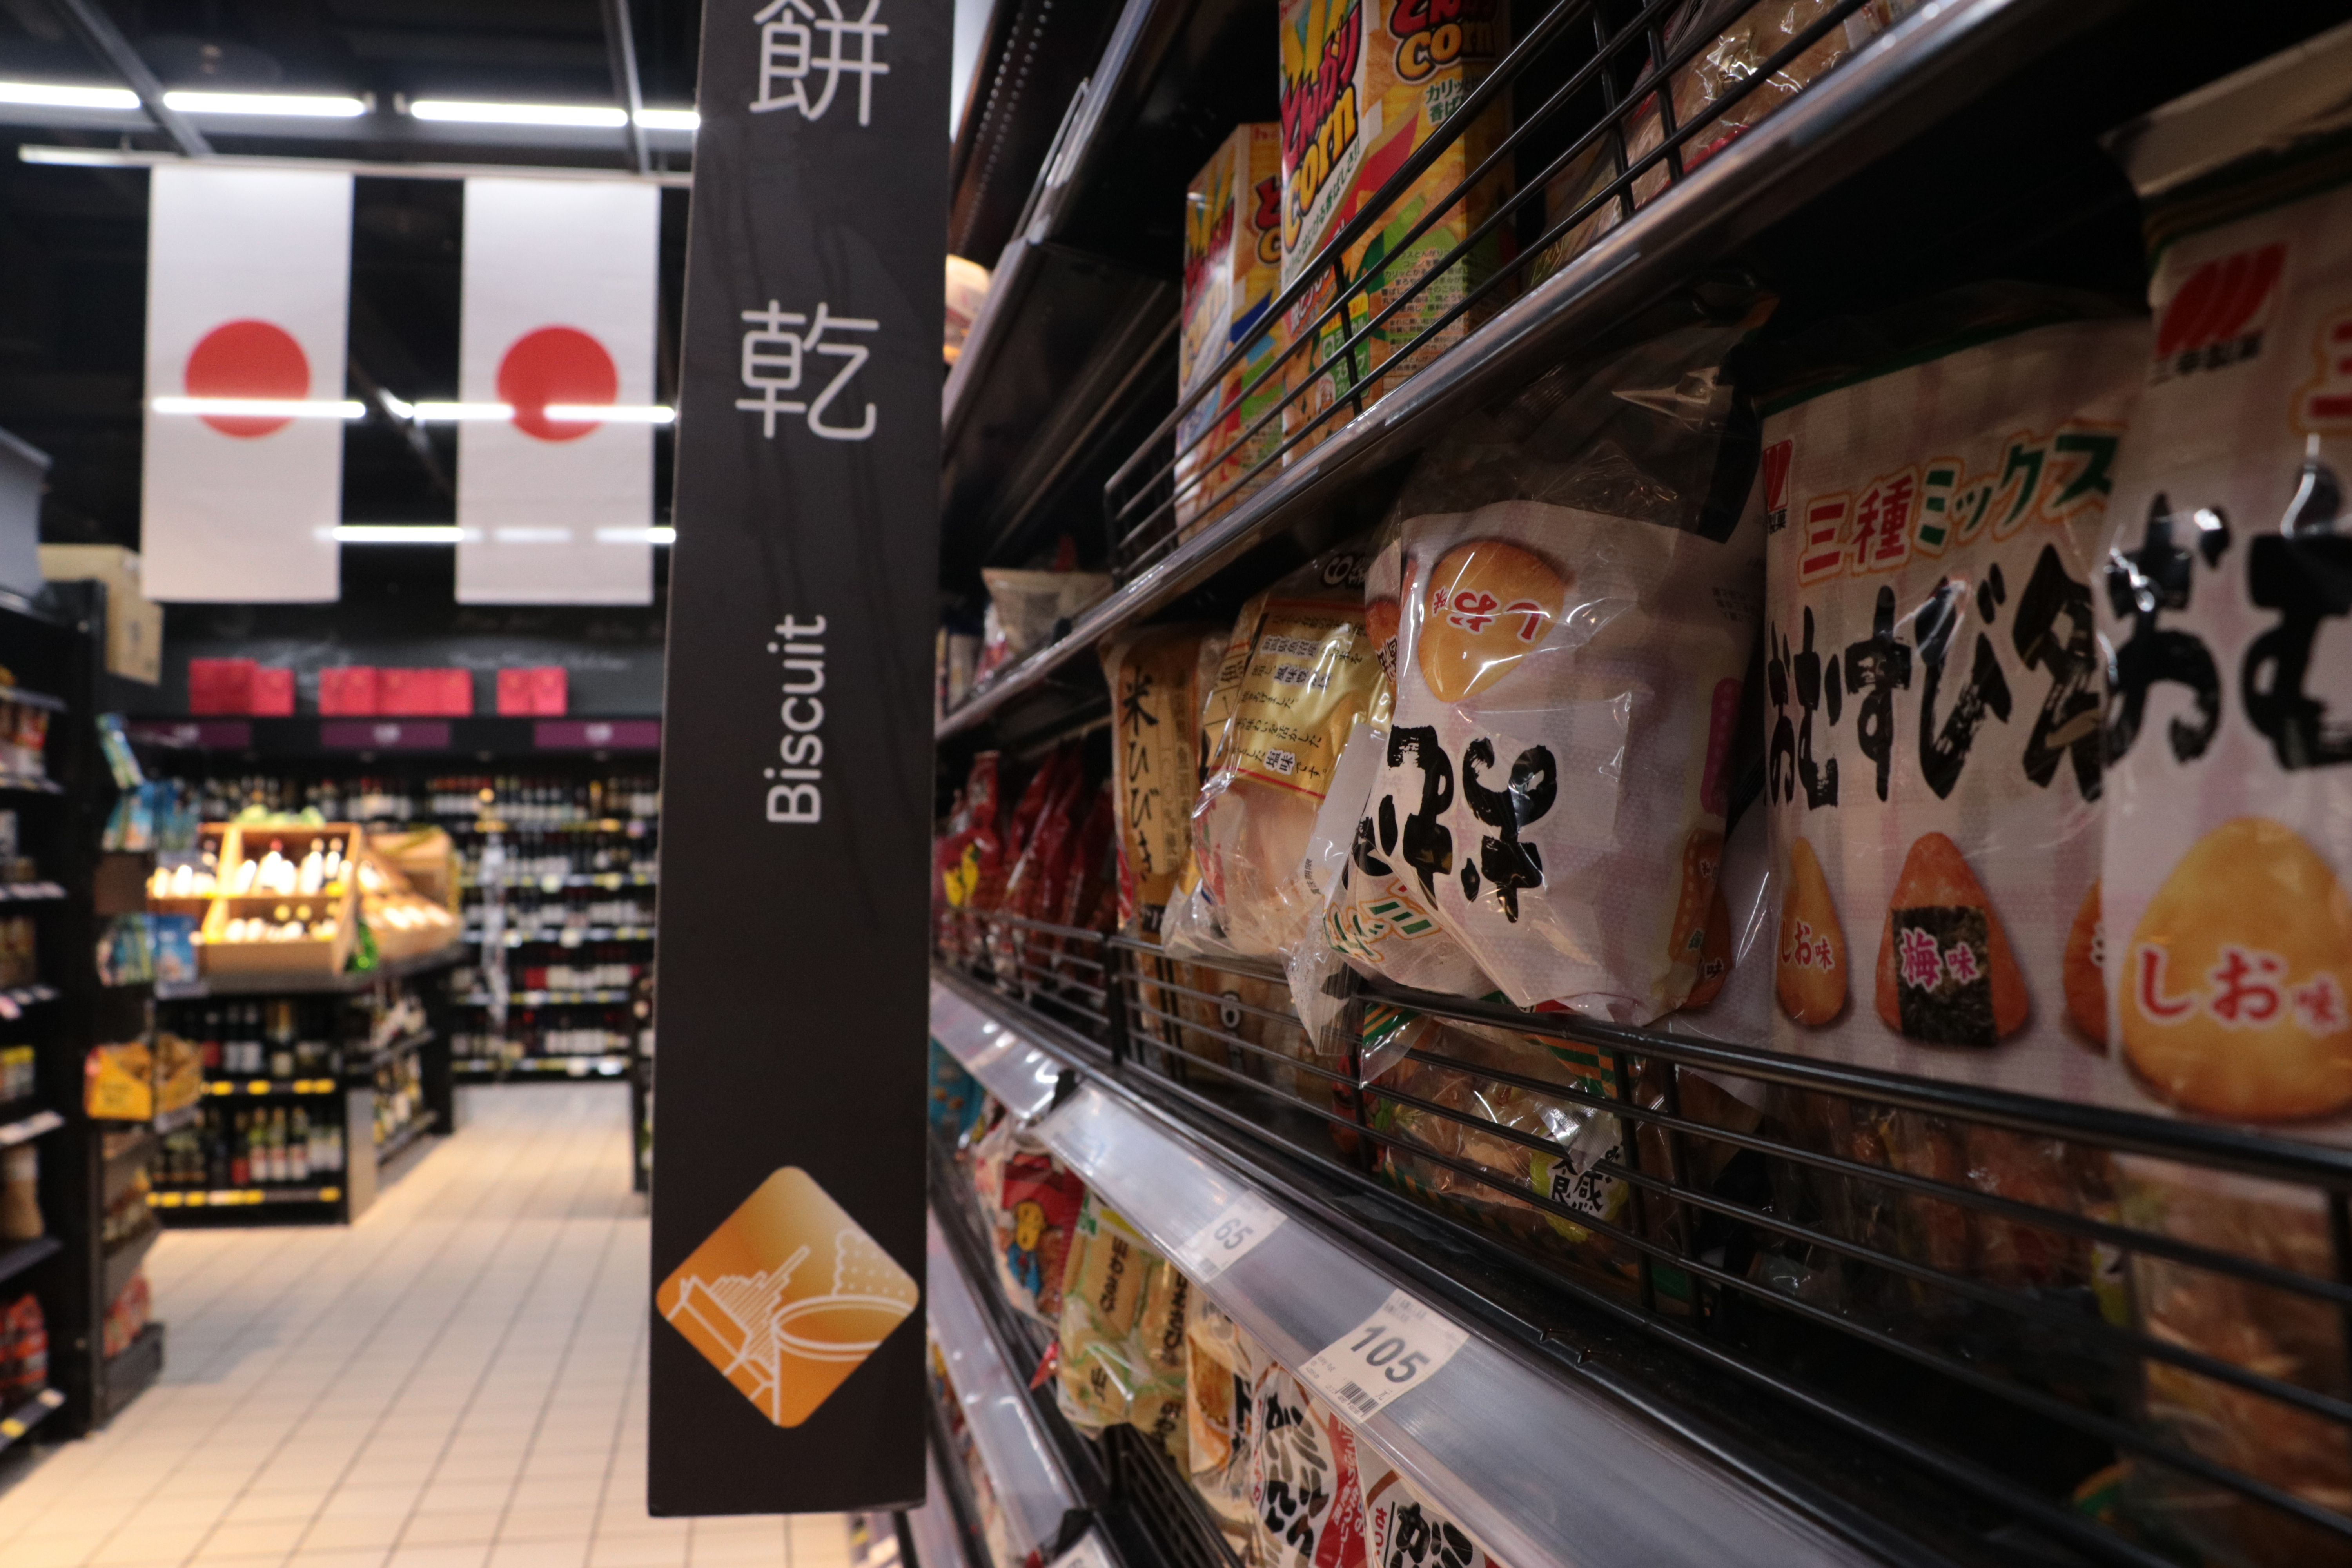 People can buy products imported from Japan easily.